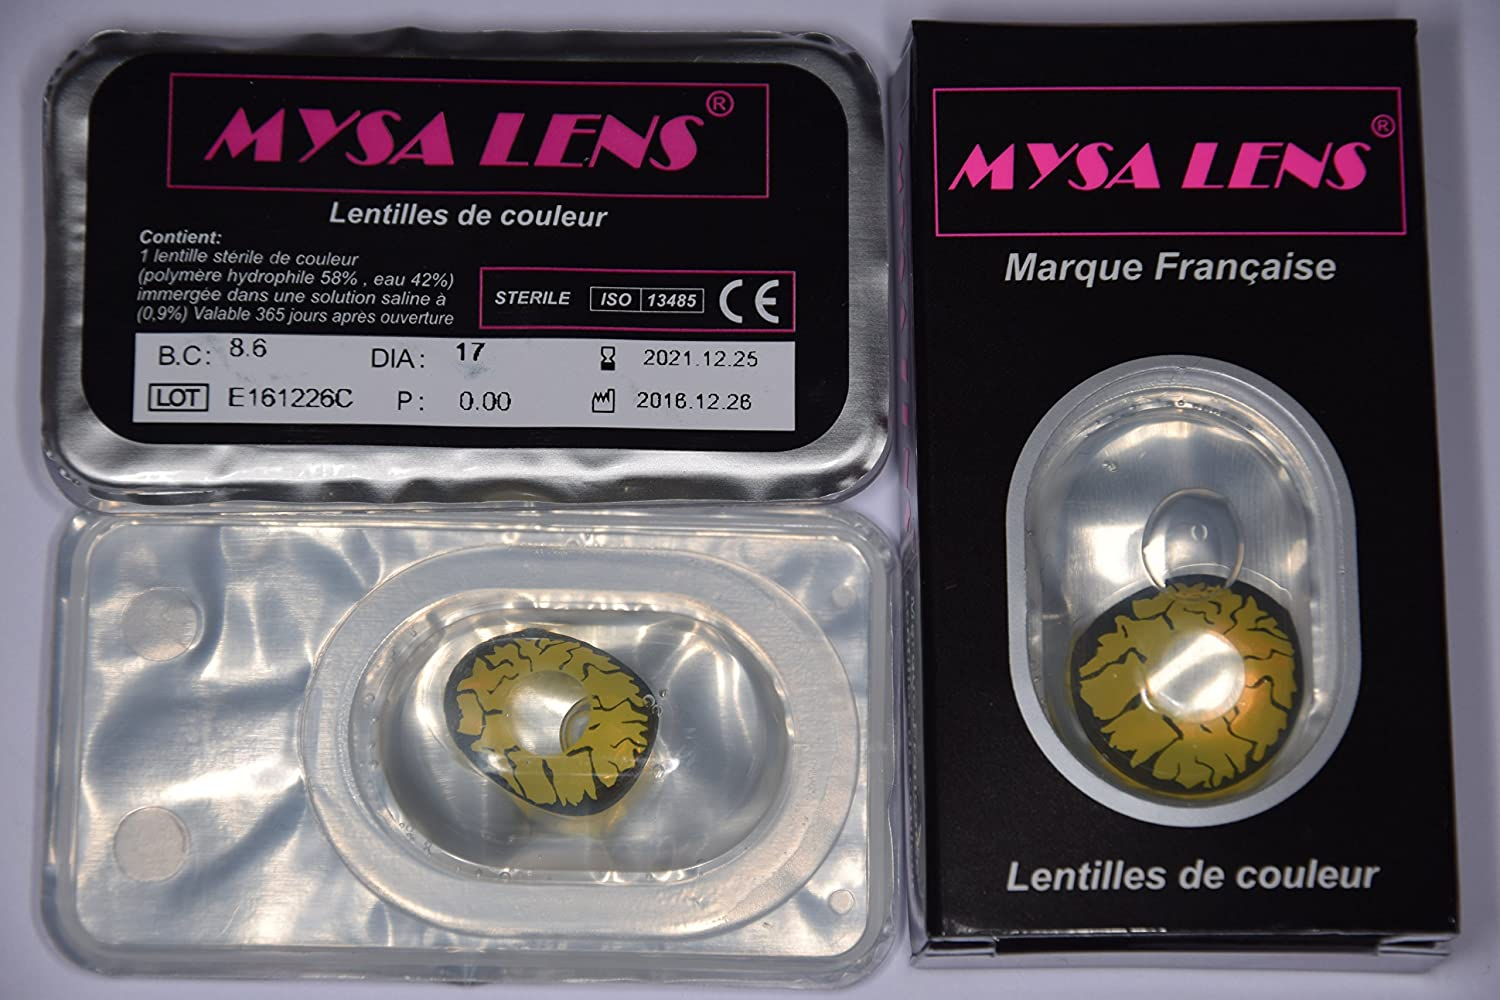 MYSA LENS® Mini Sclera 17MM Lentilles De Contact De Couleur Yellow Goblin    Yellow Rage   Demon Jaune , Ideal Pour Le Carnaval Et Halloween + Avizor ... 274a556b8e51